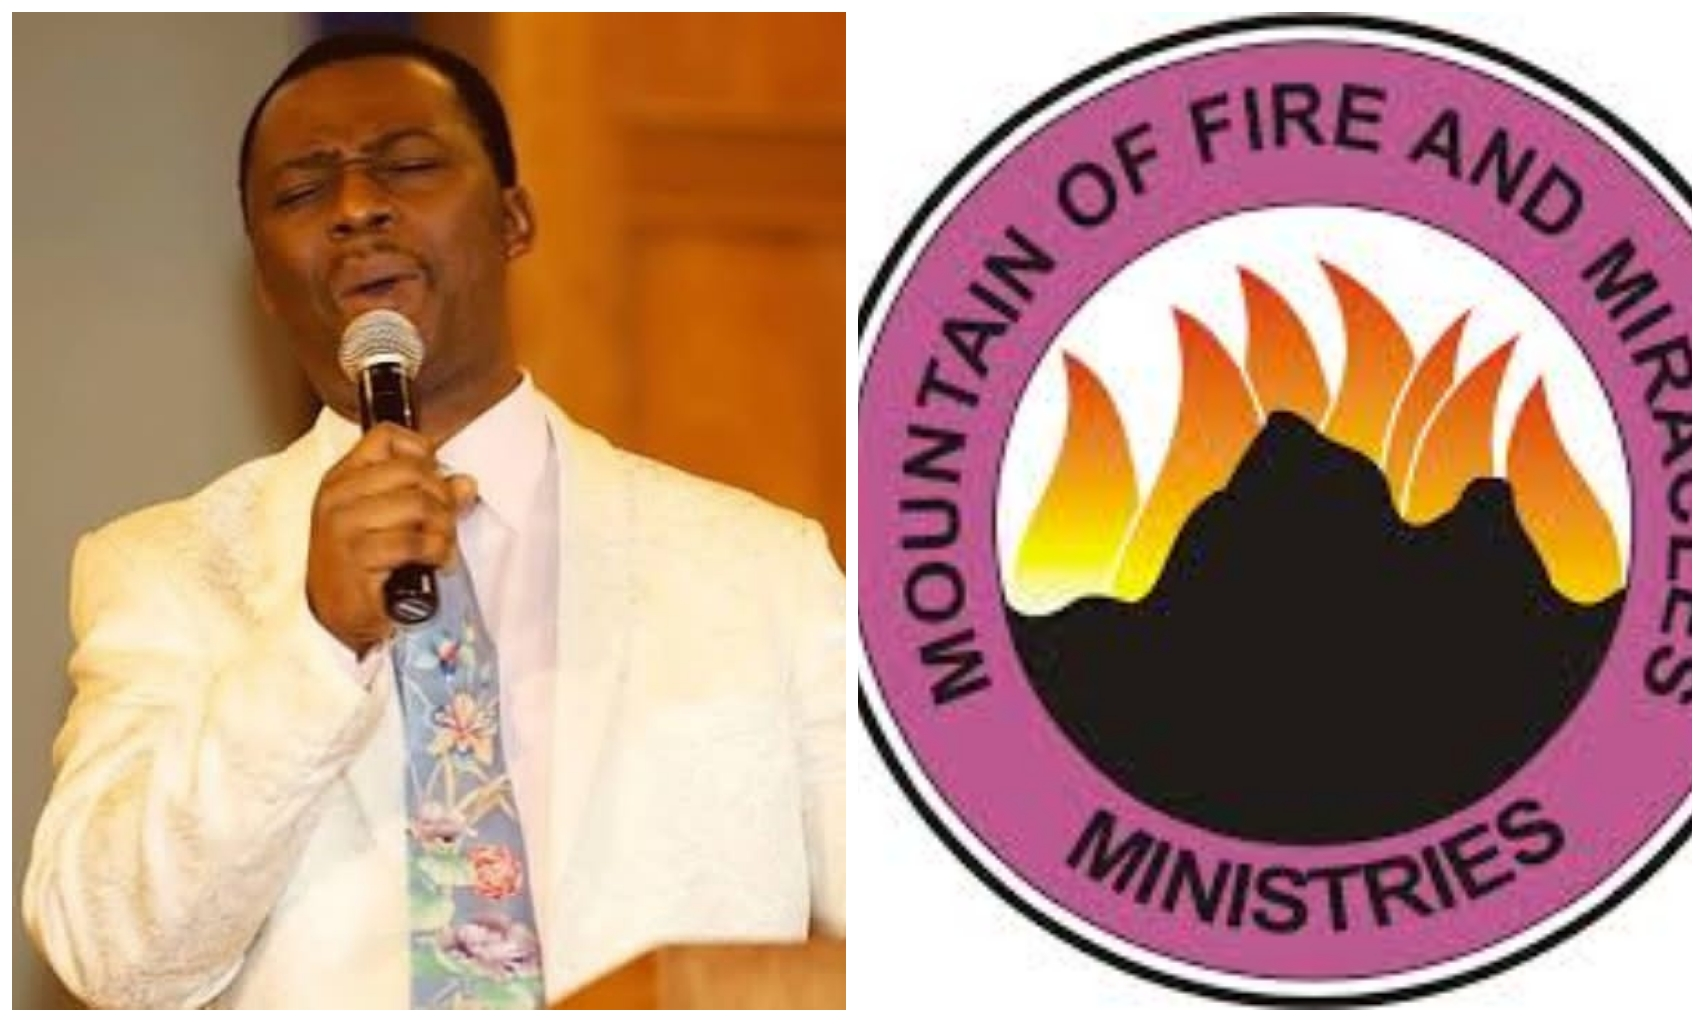 'We have not resume church service' – MFM General Overseer, Pastor D.K Olukoya announces